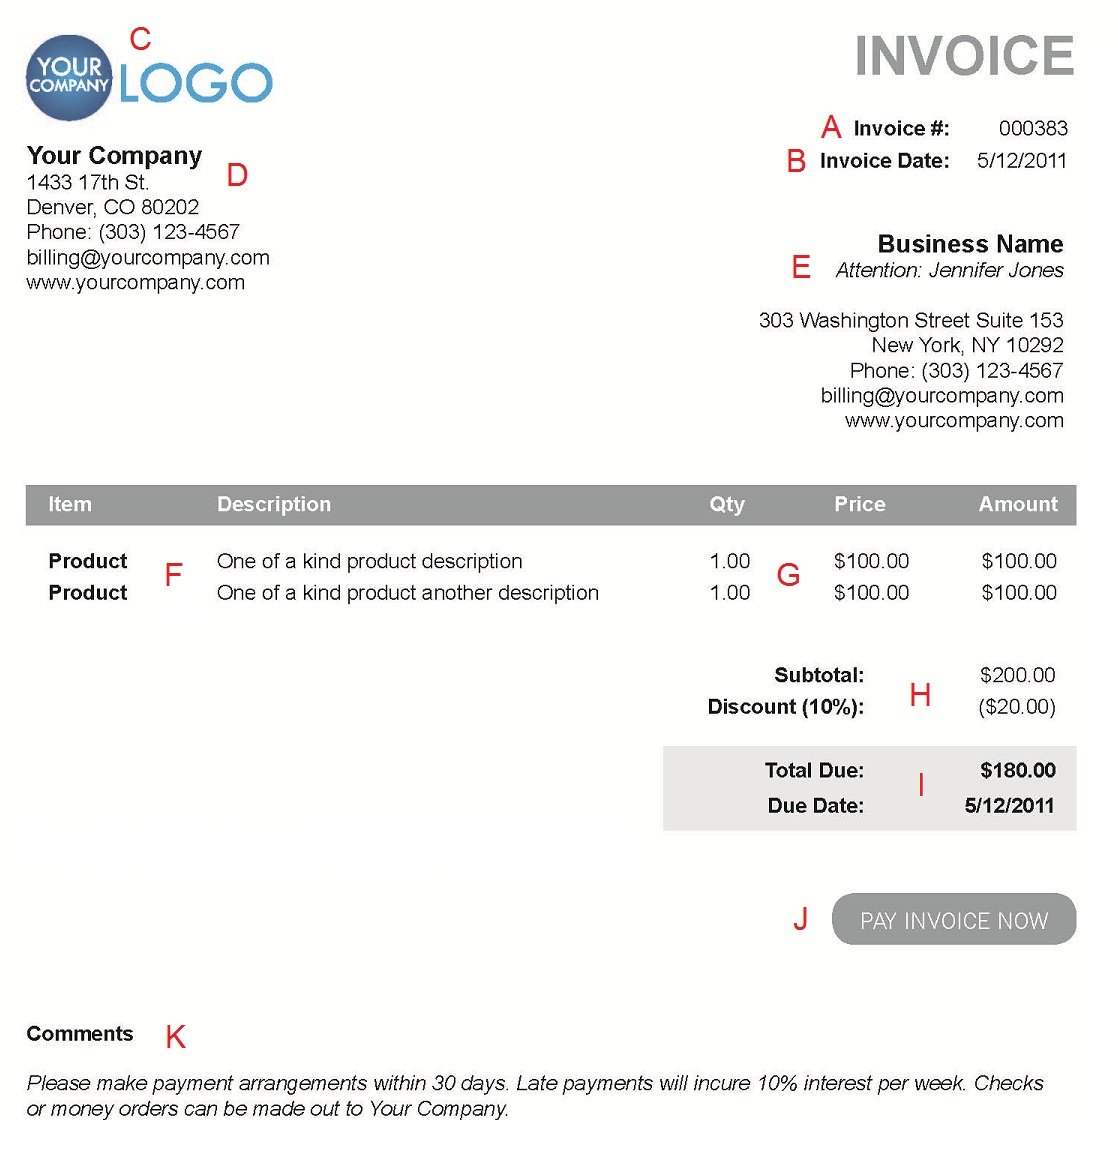 Angkajituus  Marvelous The  Different Sections Of An Electronic Payment Invoice With Exquisite A  With Awesome Invoice Express Free Also Printable Invoices Templates In Addition Due Invoices And Consumer Reports Invoice Price As Well As  Outback Invoice Additionally Template Proforma Invoice From Paysimplecom With Angkajituus  Exquisite The  Different Sections Of An Electronic Payment Invoice With Awesome A  And Marvelous Invoice Express Free Also Printable Invoices Templates In Addition Due Invoices From Paysimplecom